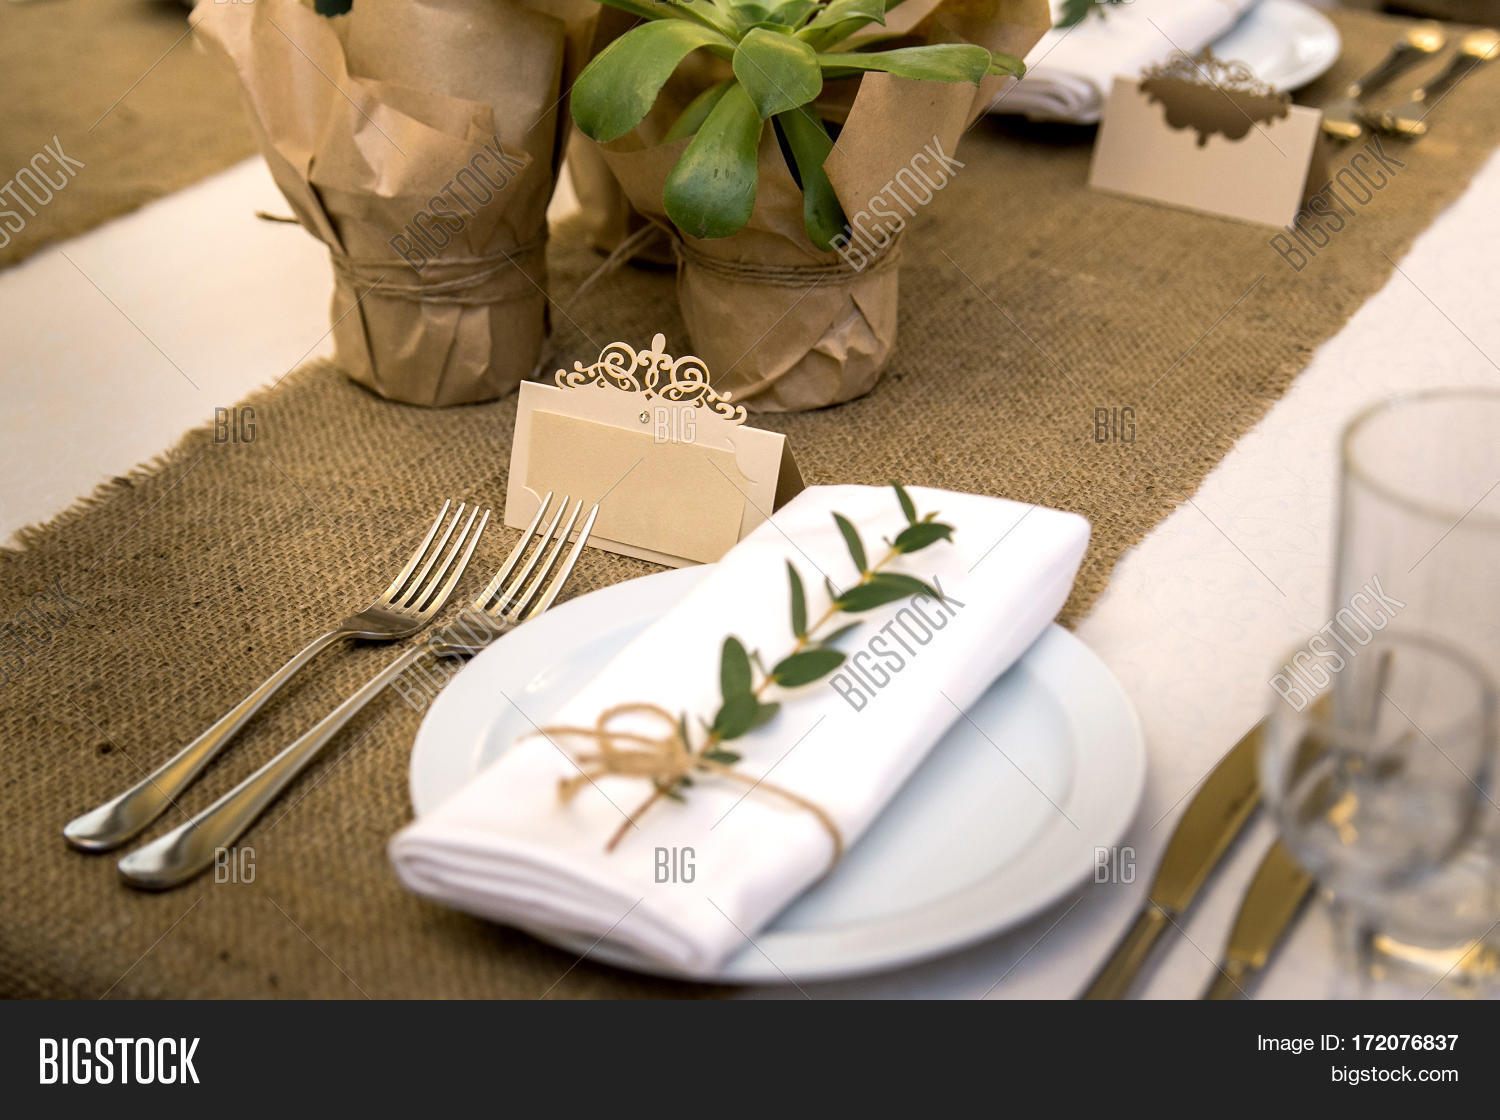 Wedding table setting image photo free trial bigstock wedding table setting in rustic style eco style wedding decoration table setting with junglespirit Image collections